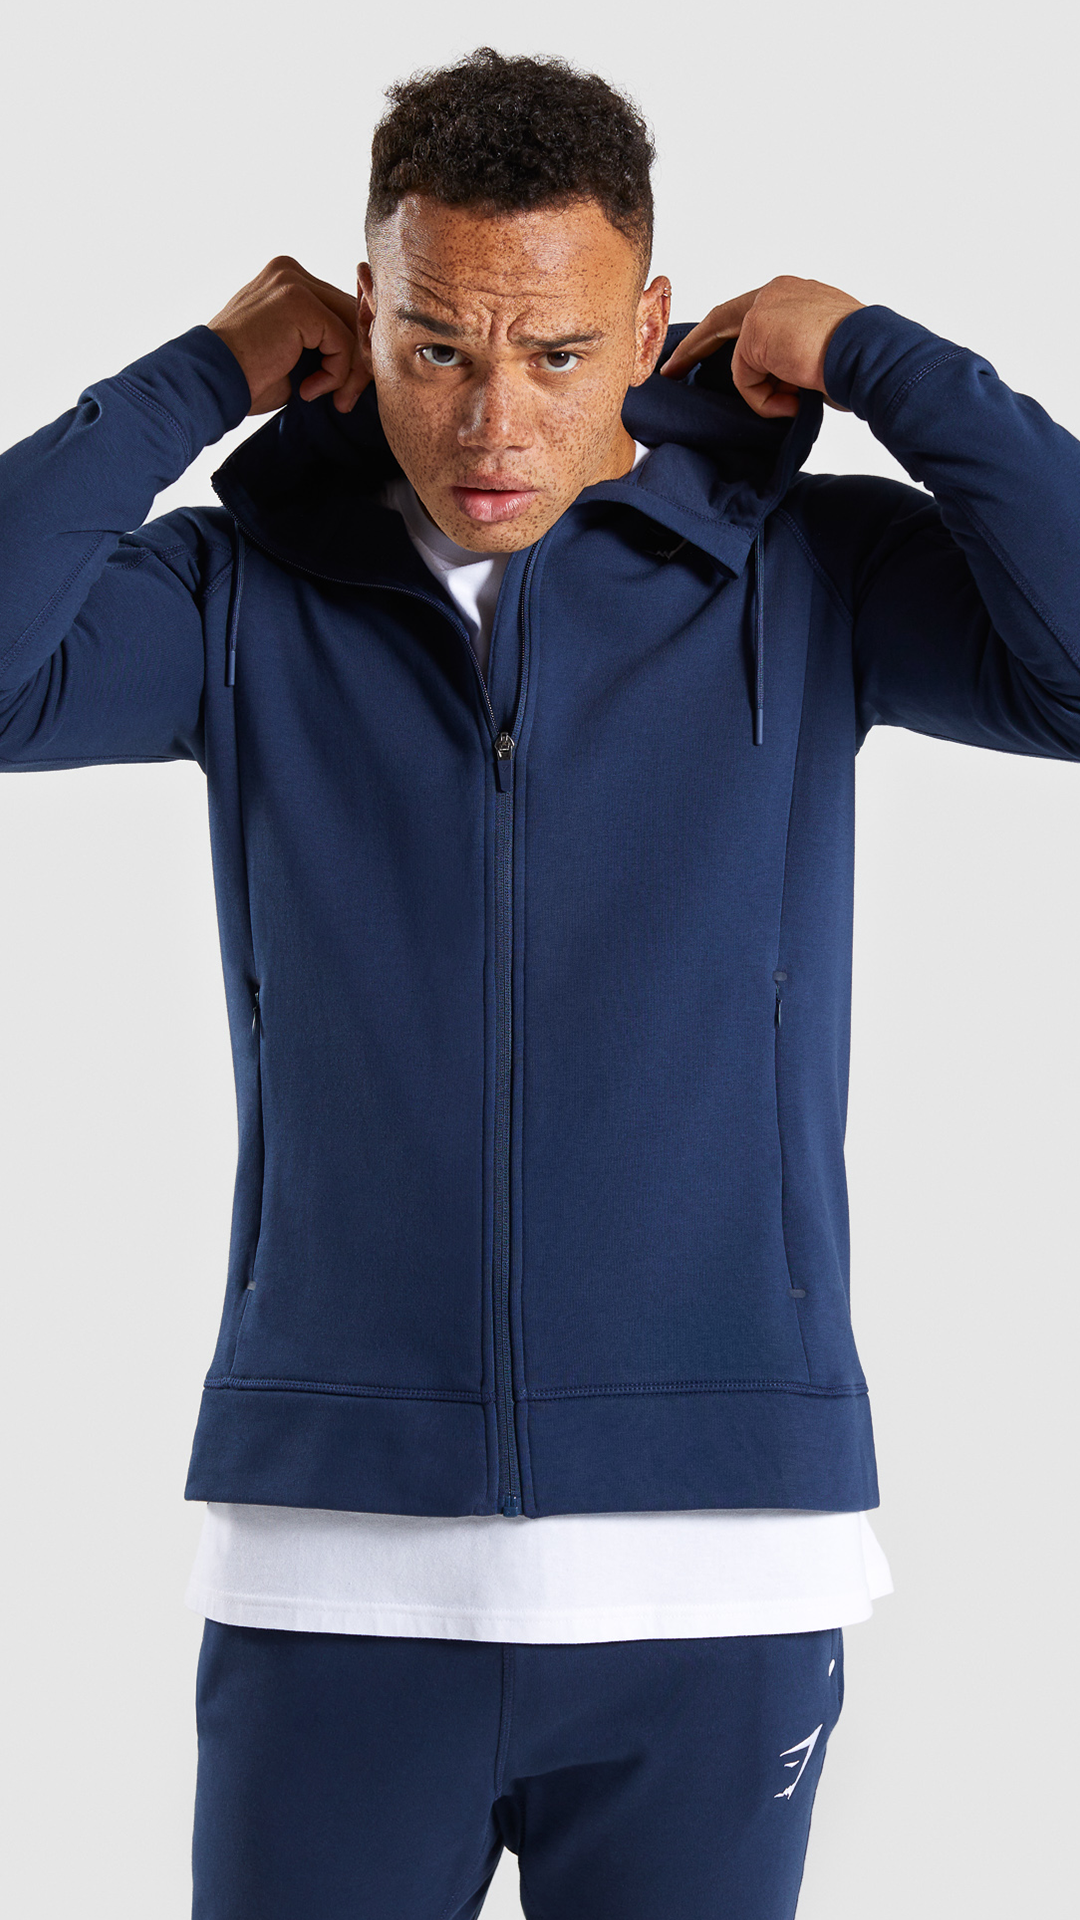 Principle Zip Hoodie, Sapphire Blue. Constructed from soft